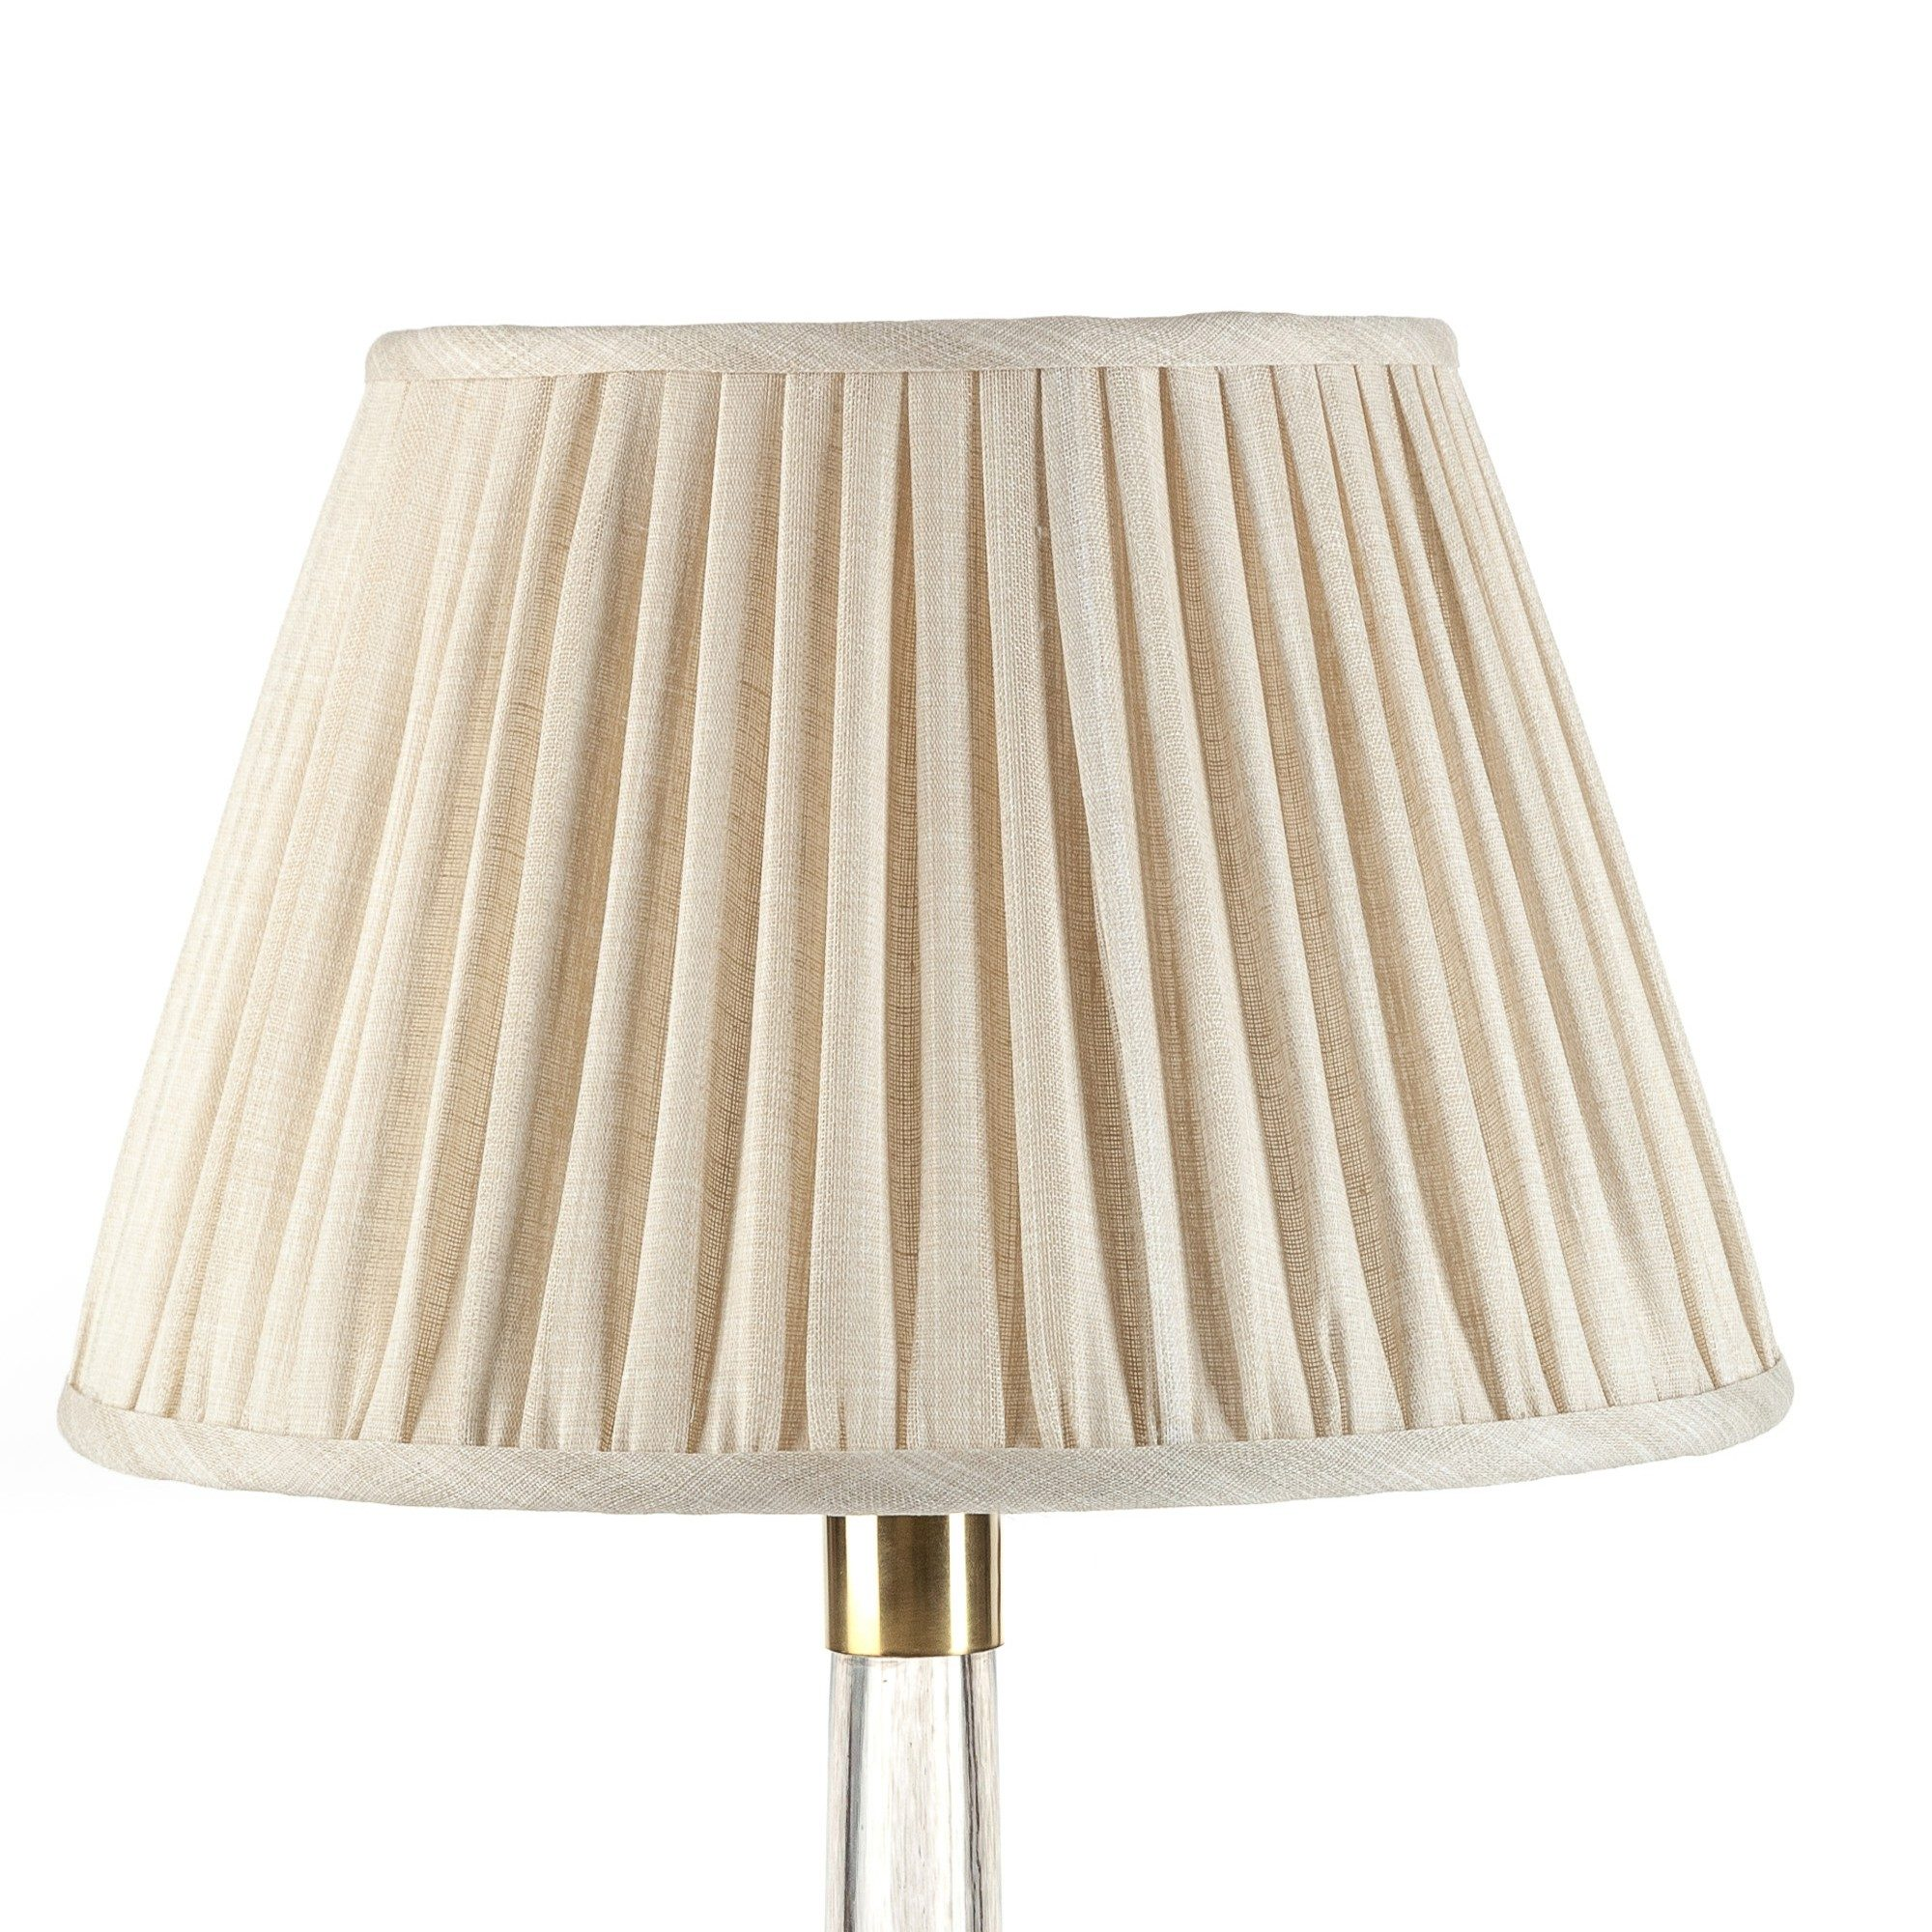 Empire Gathered Lampshade in Cream Moire 035-1